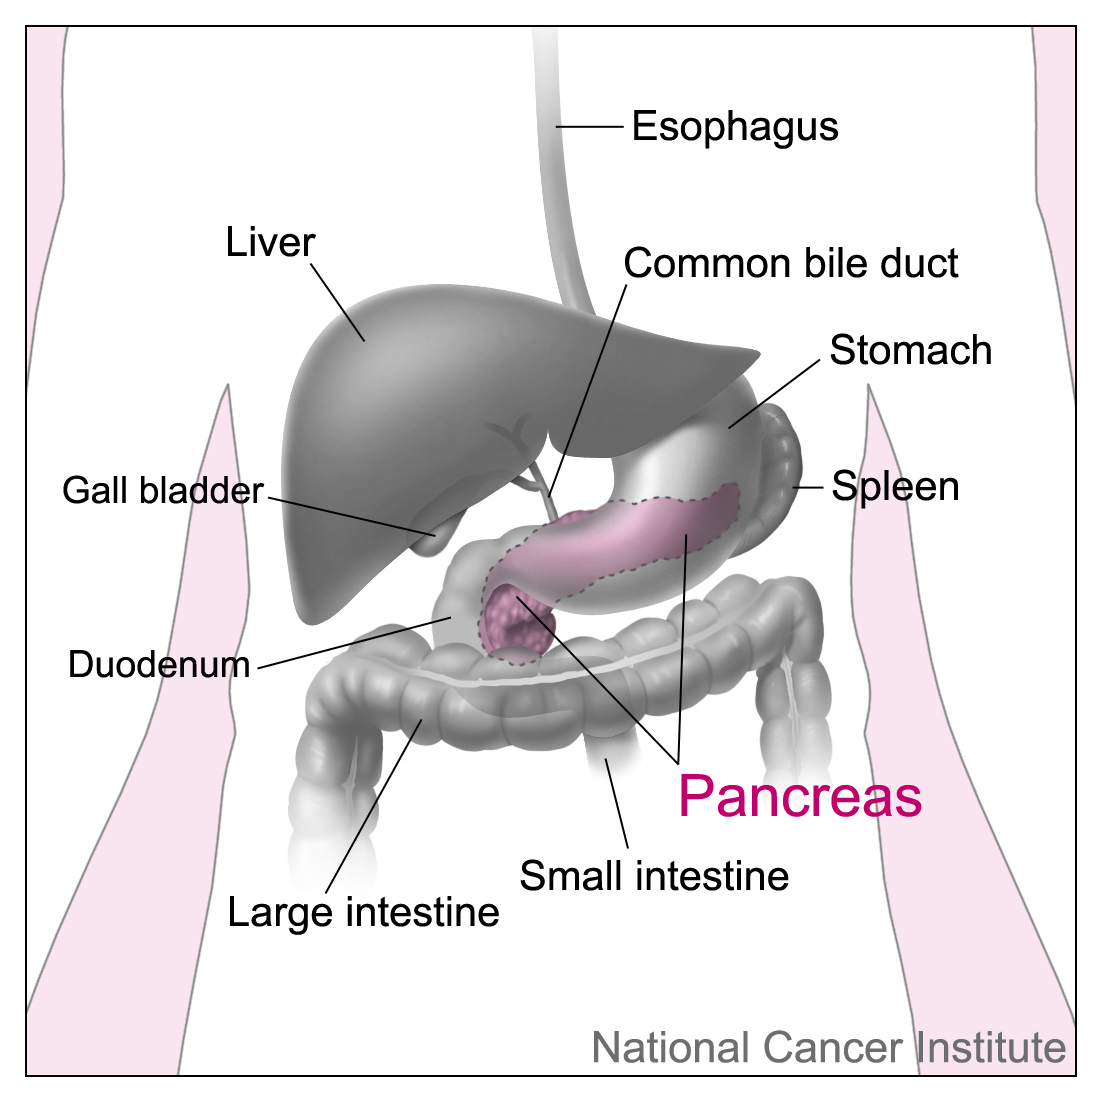 anatomy of the pancreas and surrounding organs - diagram used to illustrate diagnosing pancreatic cancer with endoscopic ultrasound (EUS)